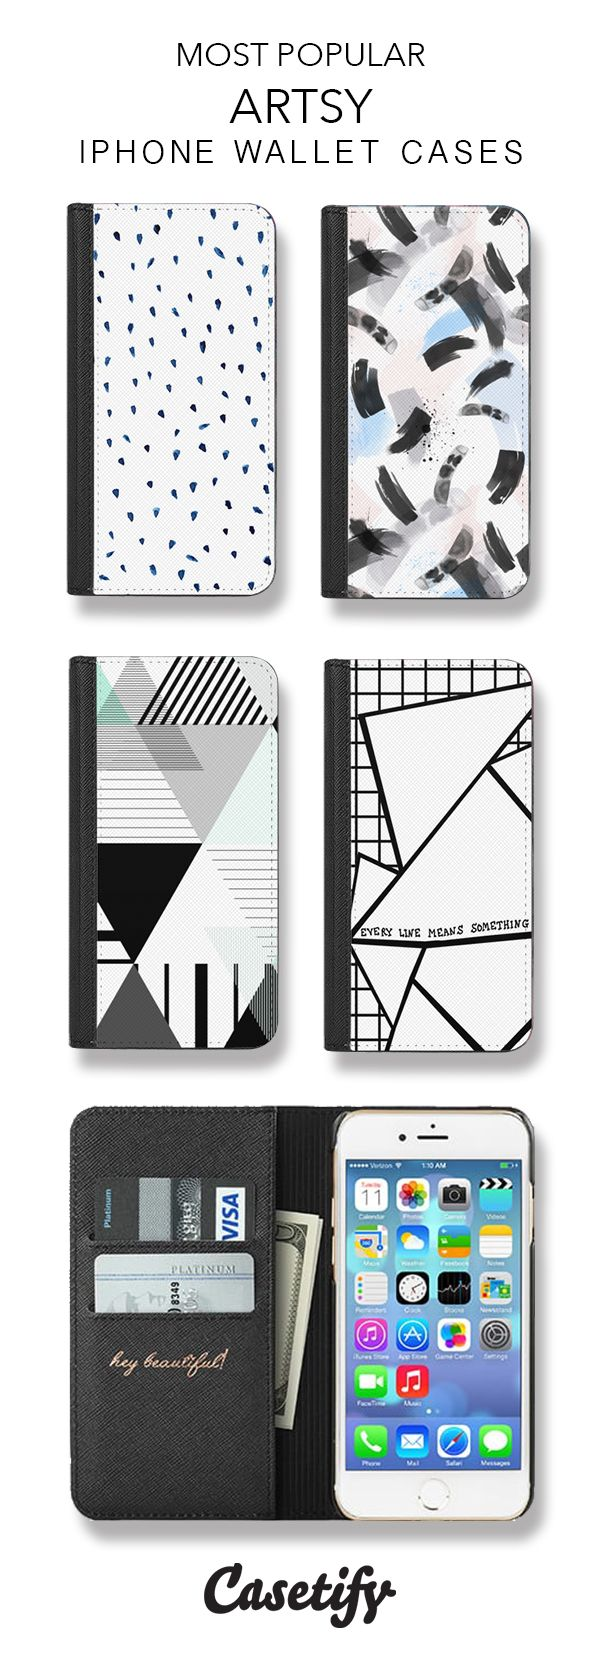 Most Popular Artsy iPhone Wallet Cases here > https://www.casetify.com/en_US/collections/iphone-wallet-cases#/